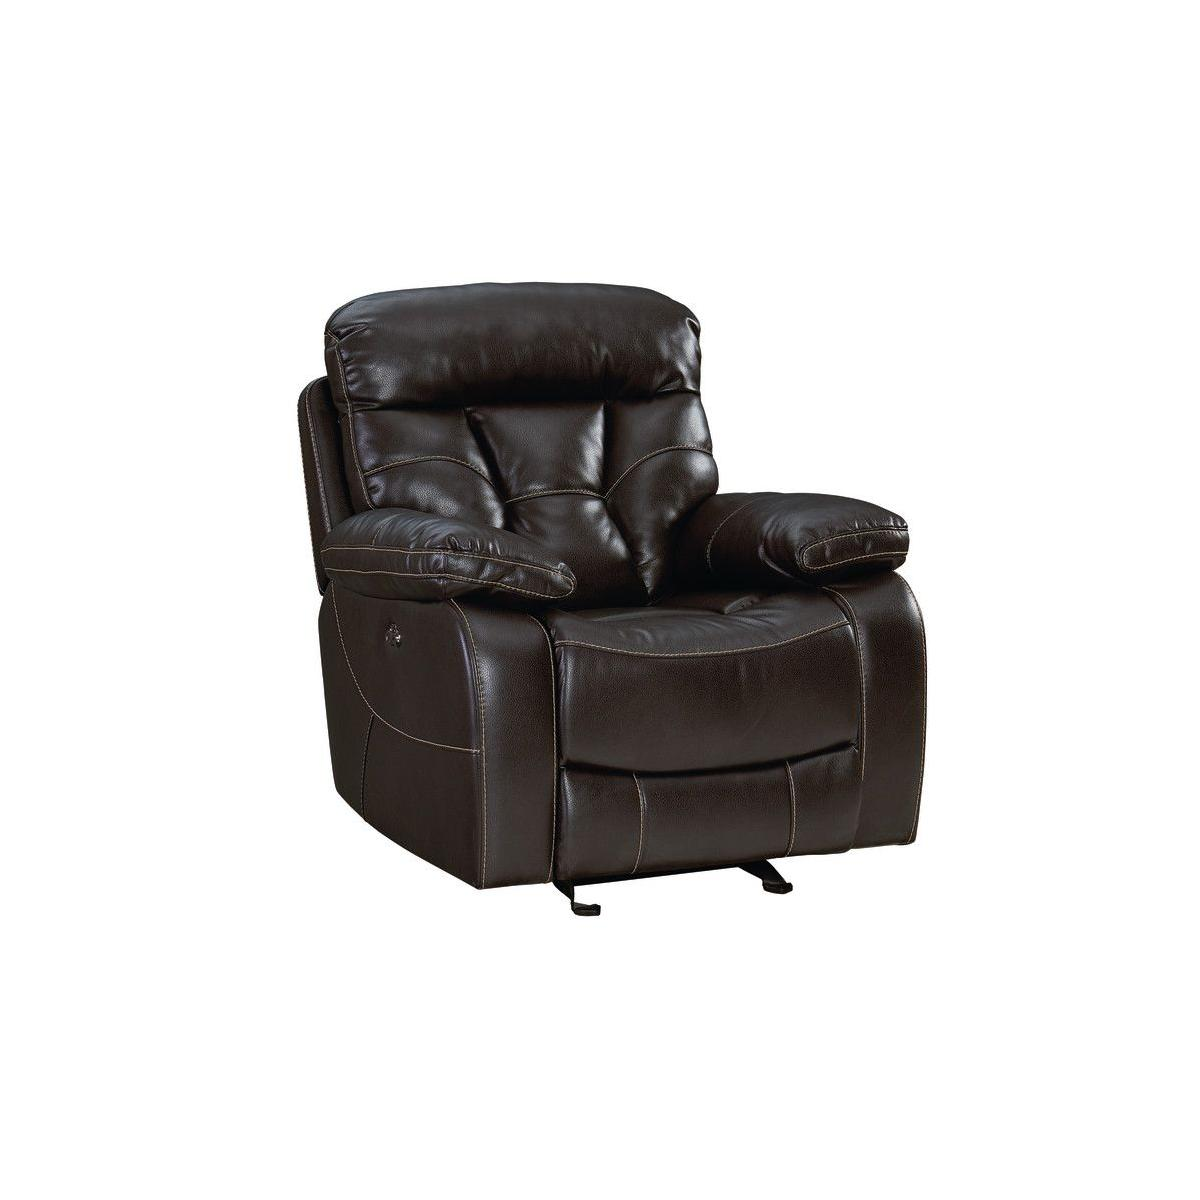 Peoria Manual Motion Glider Recliner, Brown